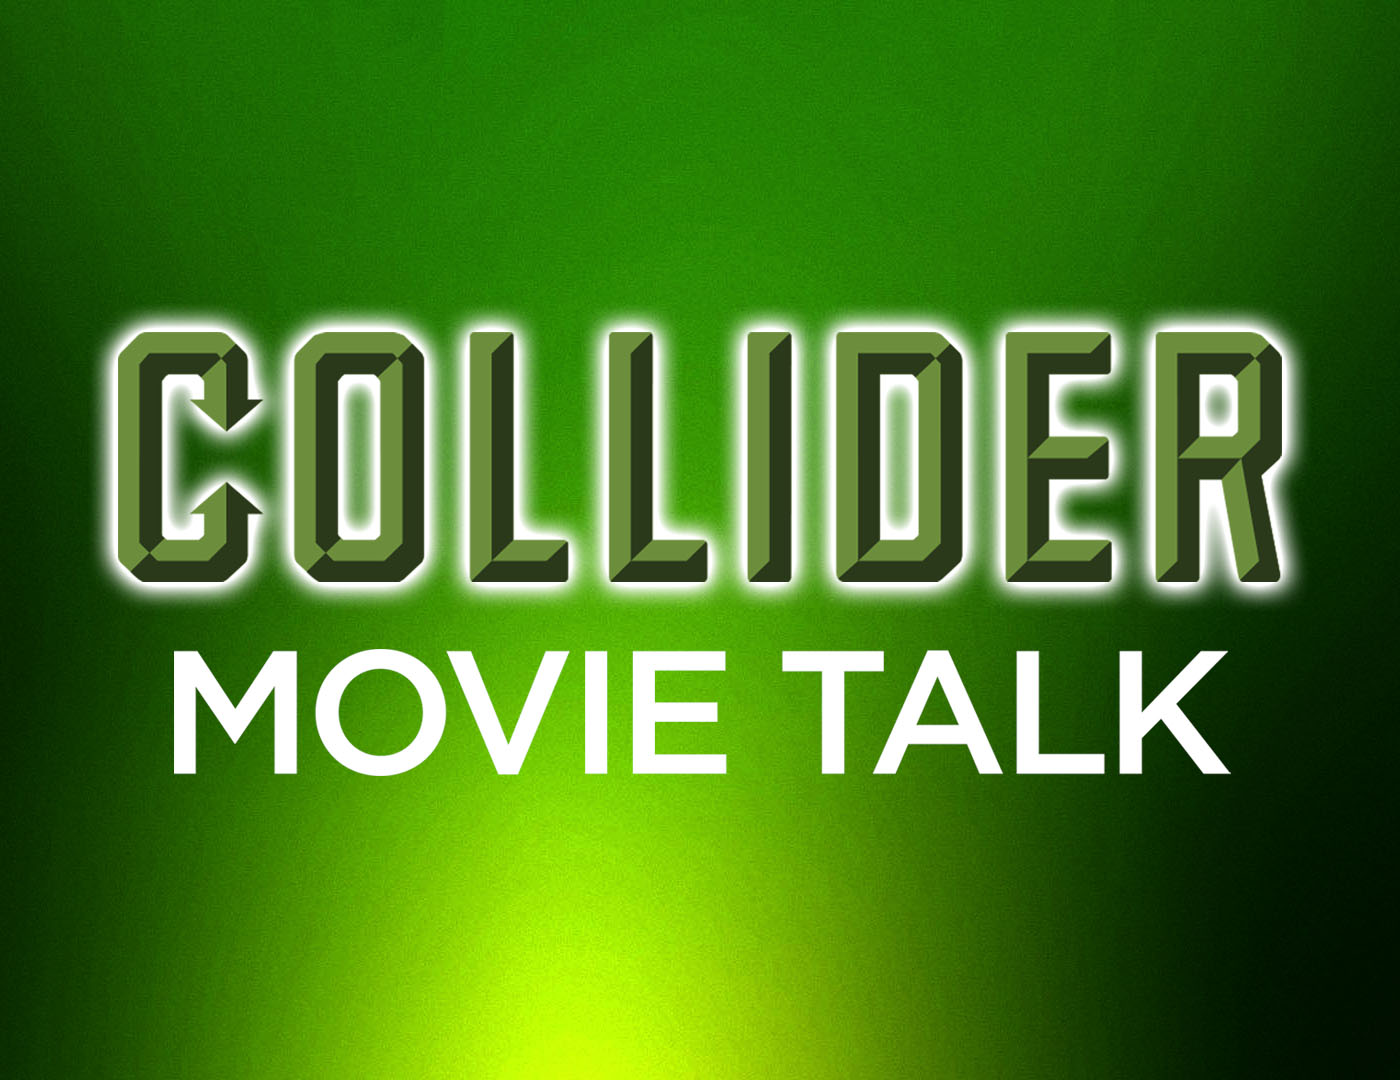 Collider Movie Talk - Final X-Men Apocalypse Trailer, Inhumans Pulled From Schedule